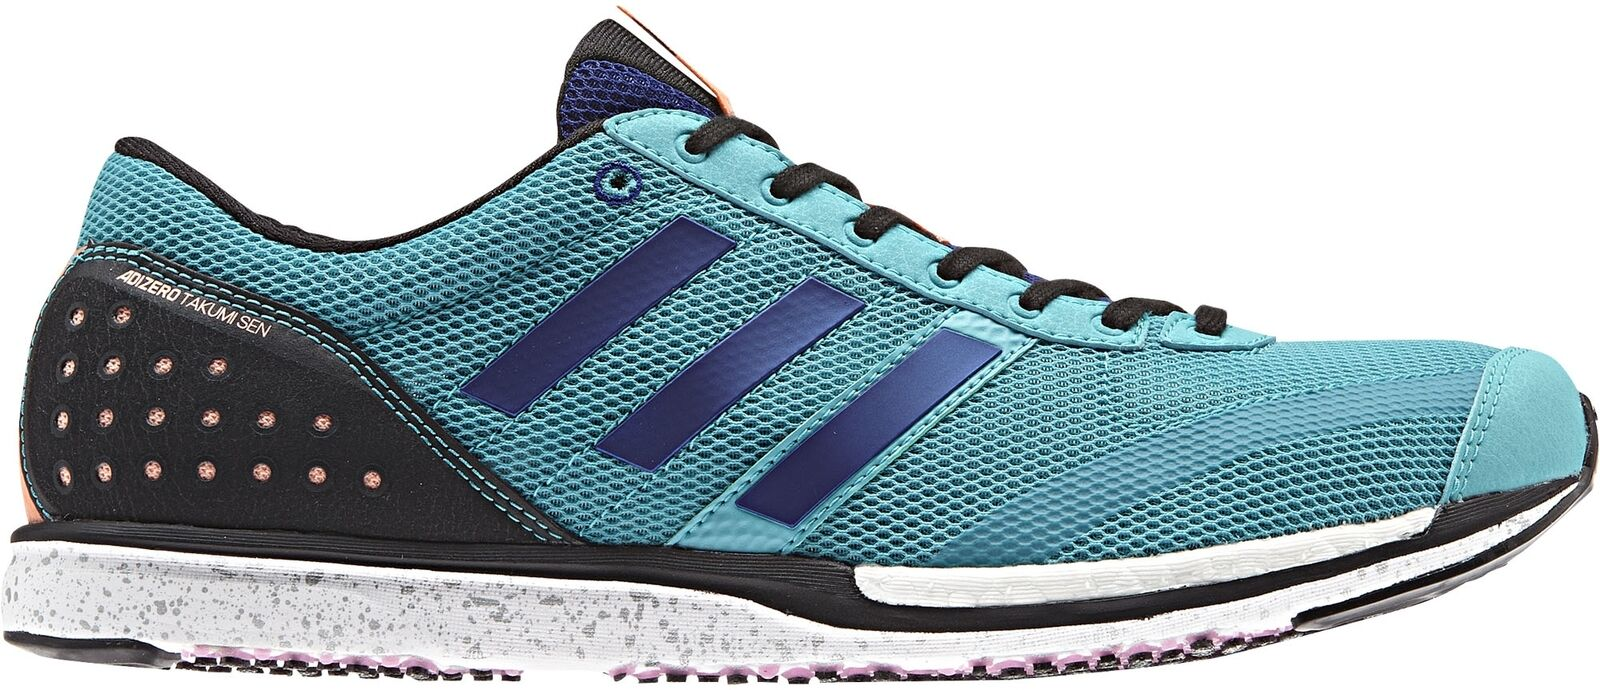 Adidas Adizero Takumi Sen Boost 3 Mens Running shoes - bluee